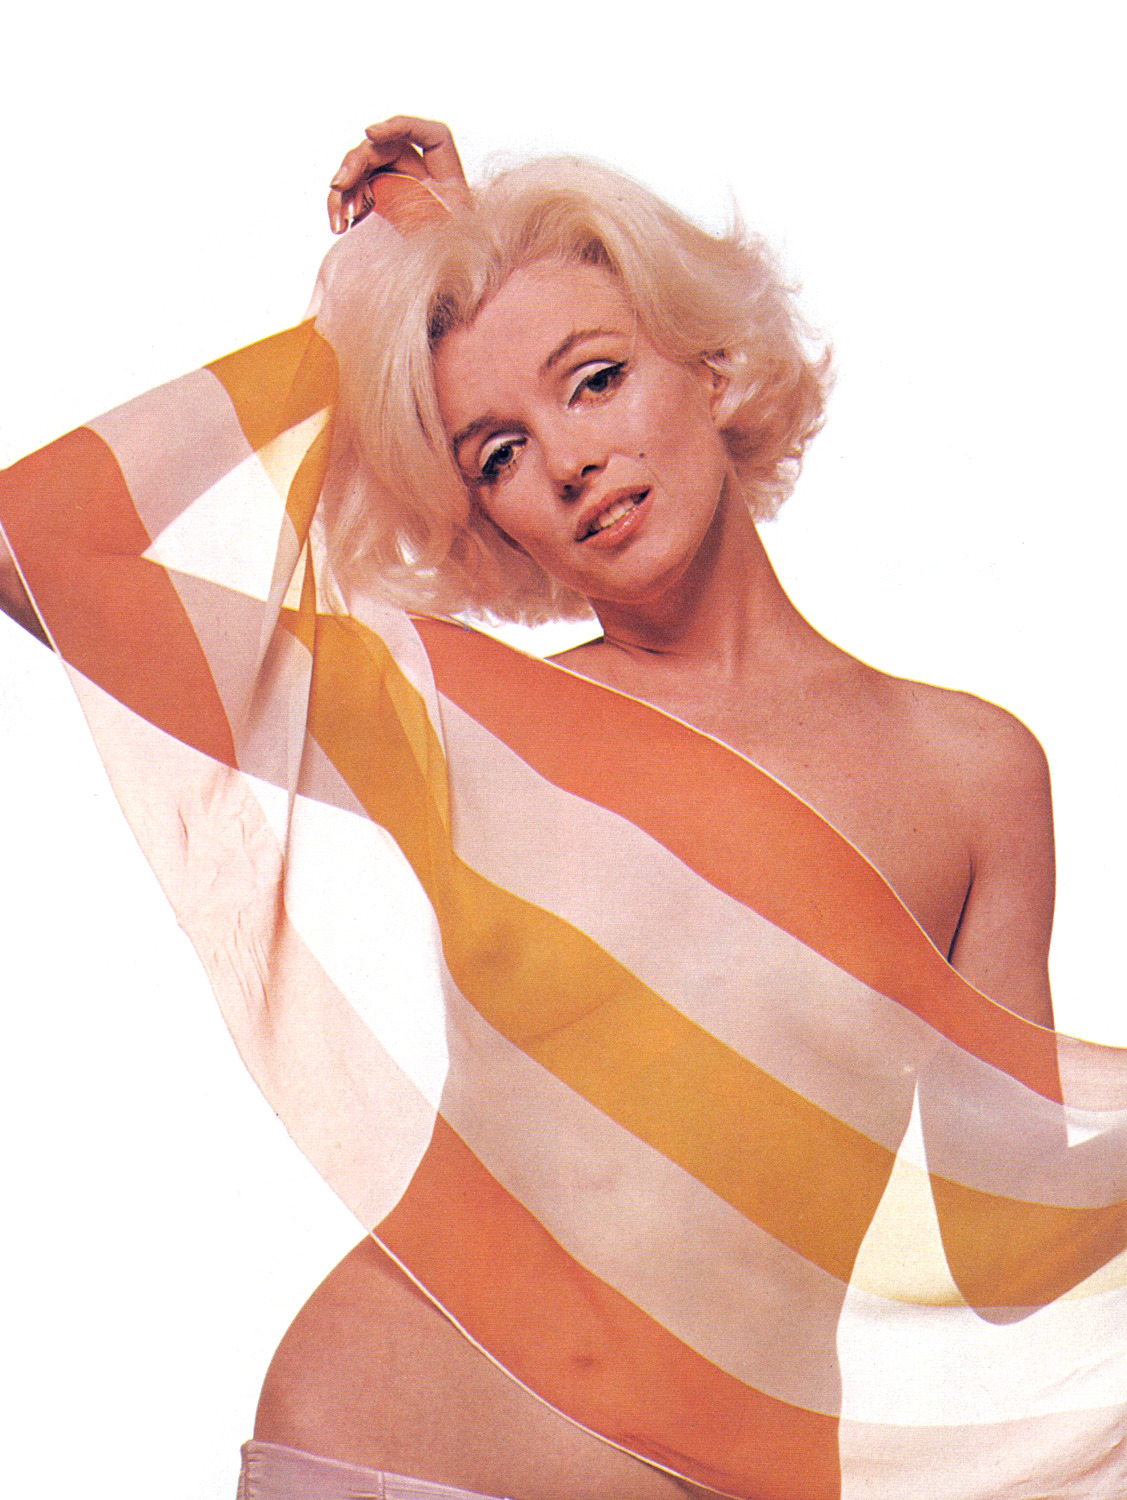 Marilyn photographed by Bert Stern, 1962